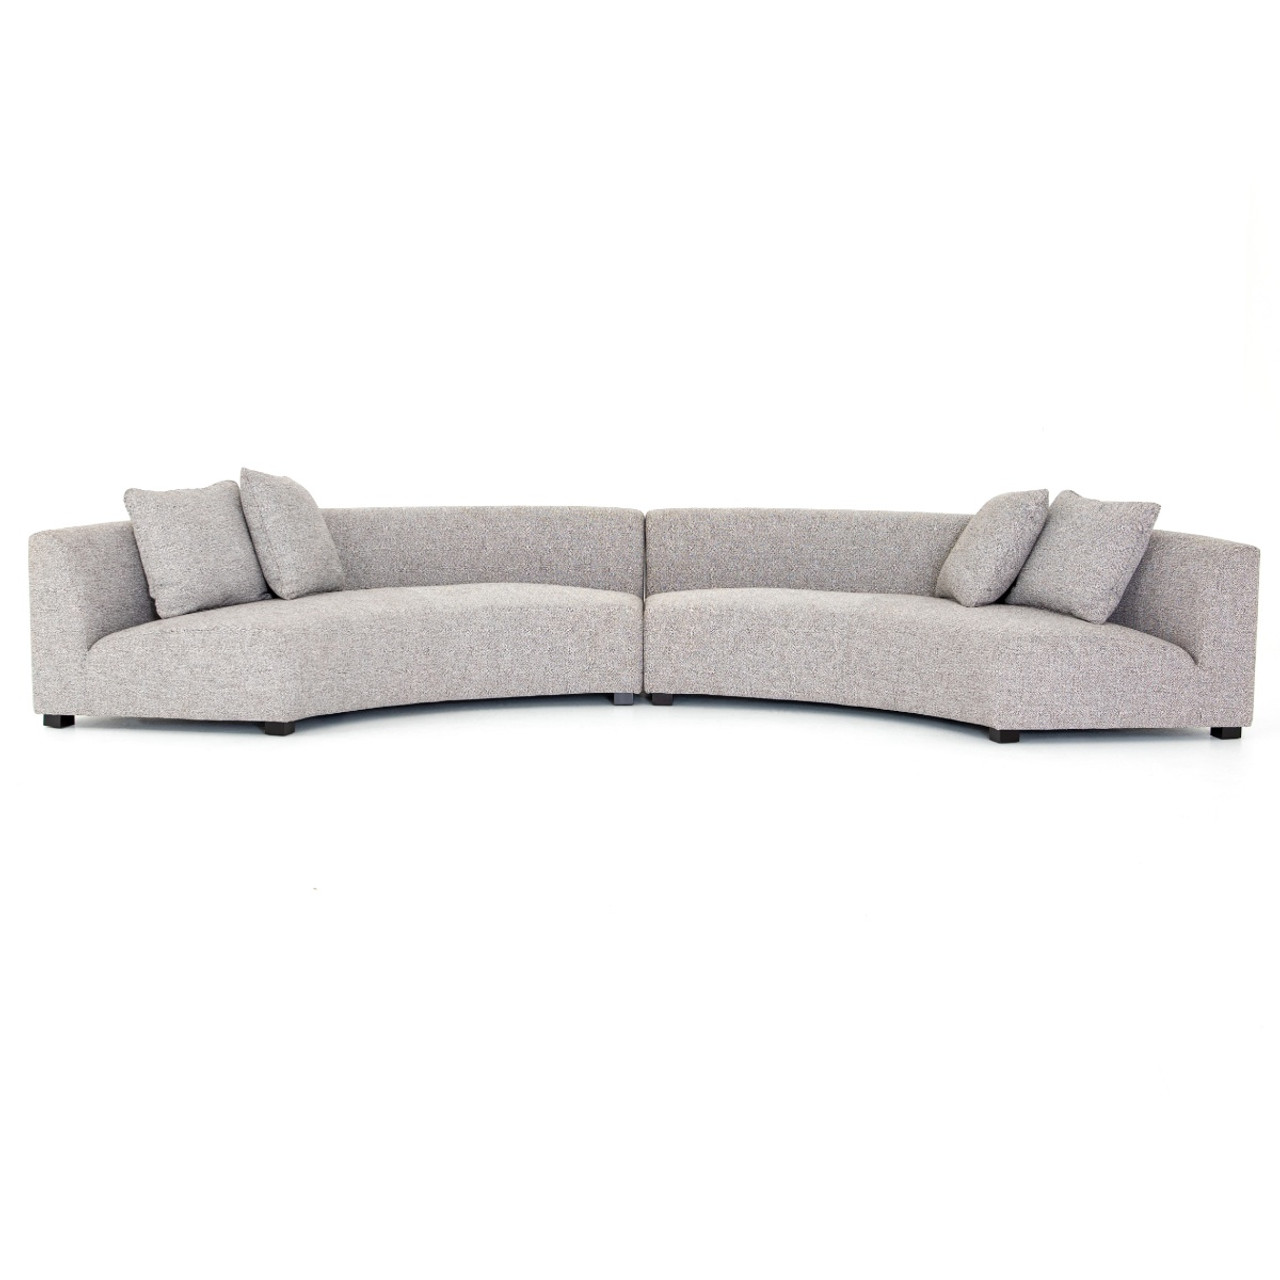 Liam Modern Grey 2 Piece Curved Sectional Sofa | Zin Home